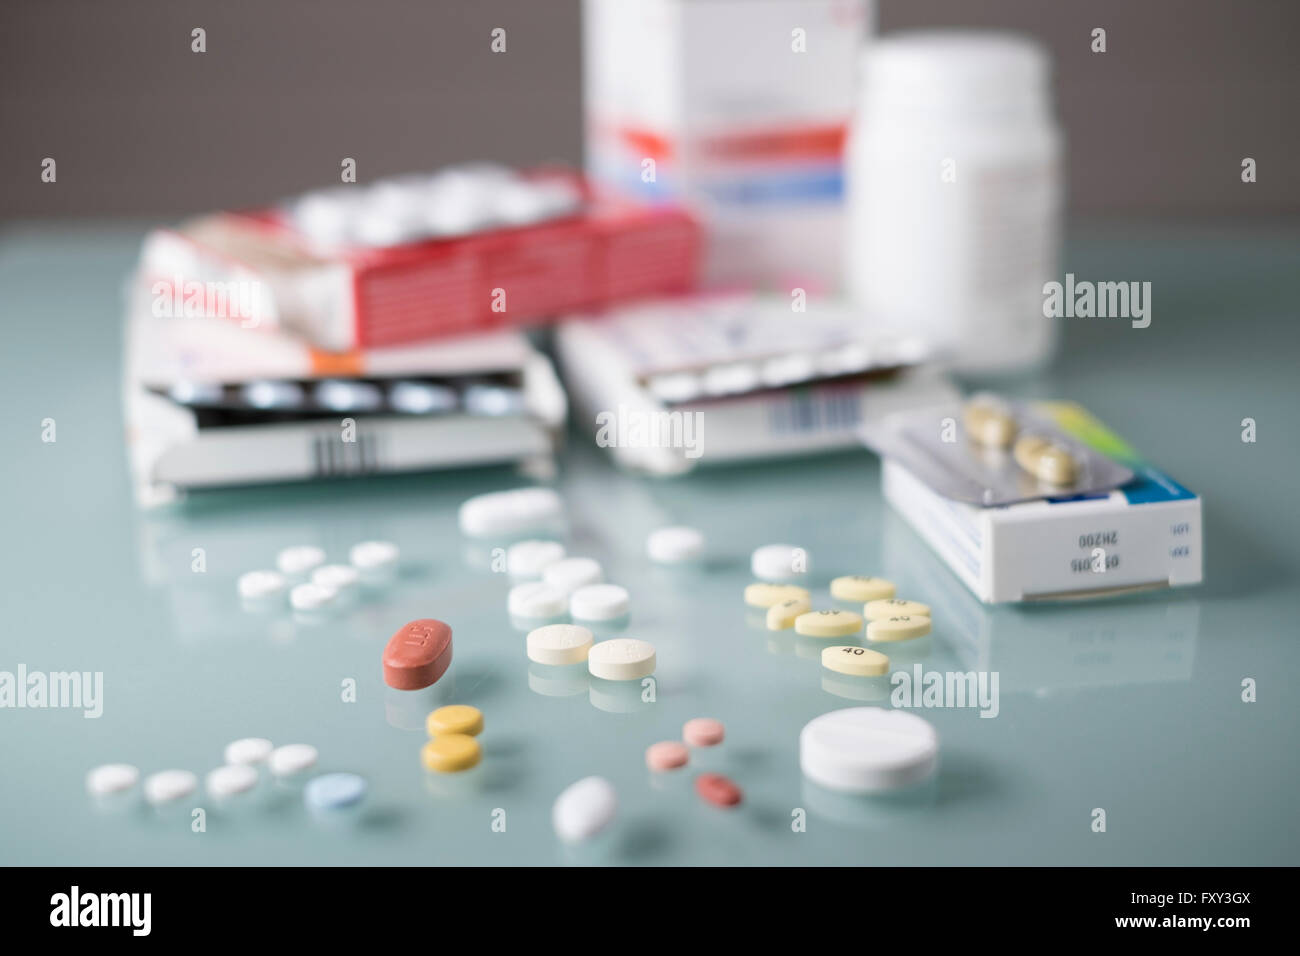 Pills and Packaging horizontal - Stock Image